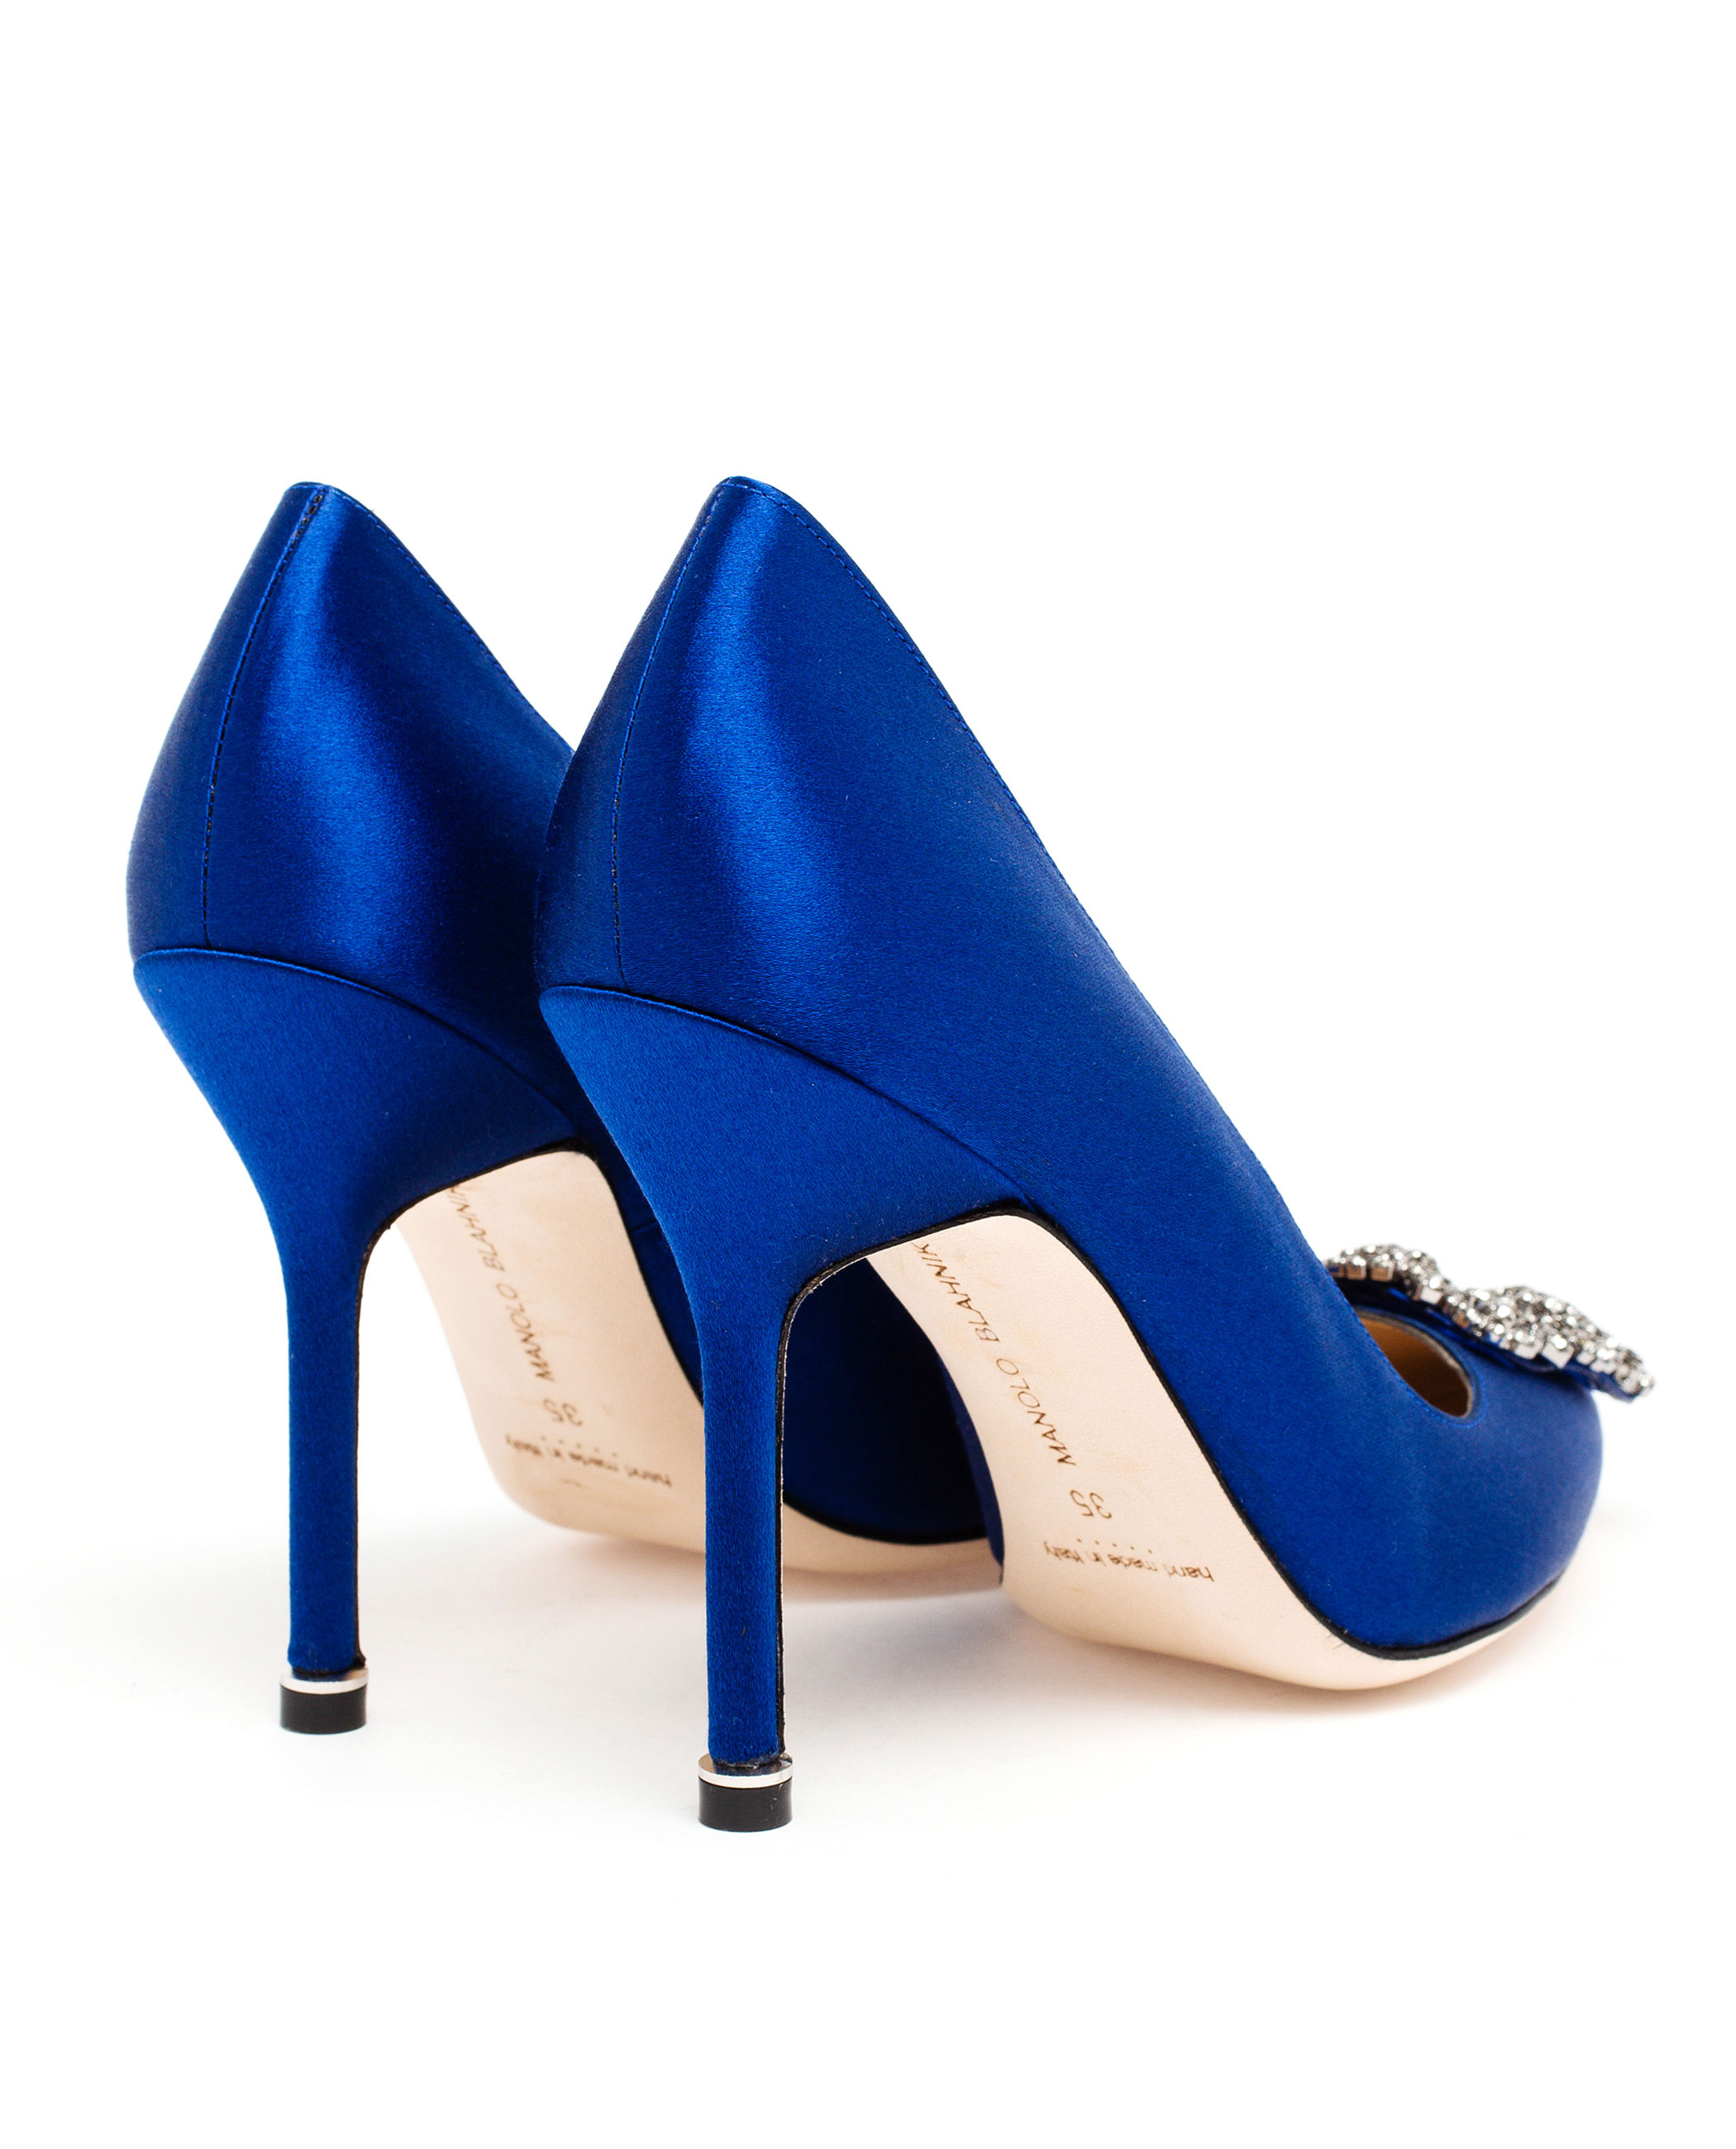 manolo-blahnik--hangisi-embellished-satin-pumps-pumps-product-1-27831592-1-144091832-normal.jpeg